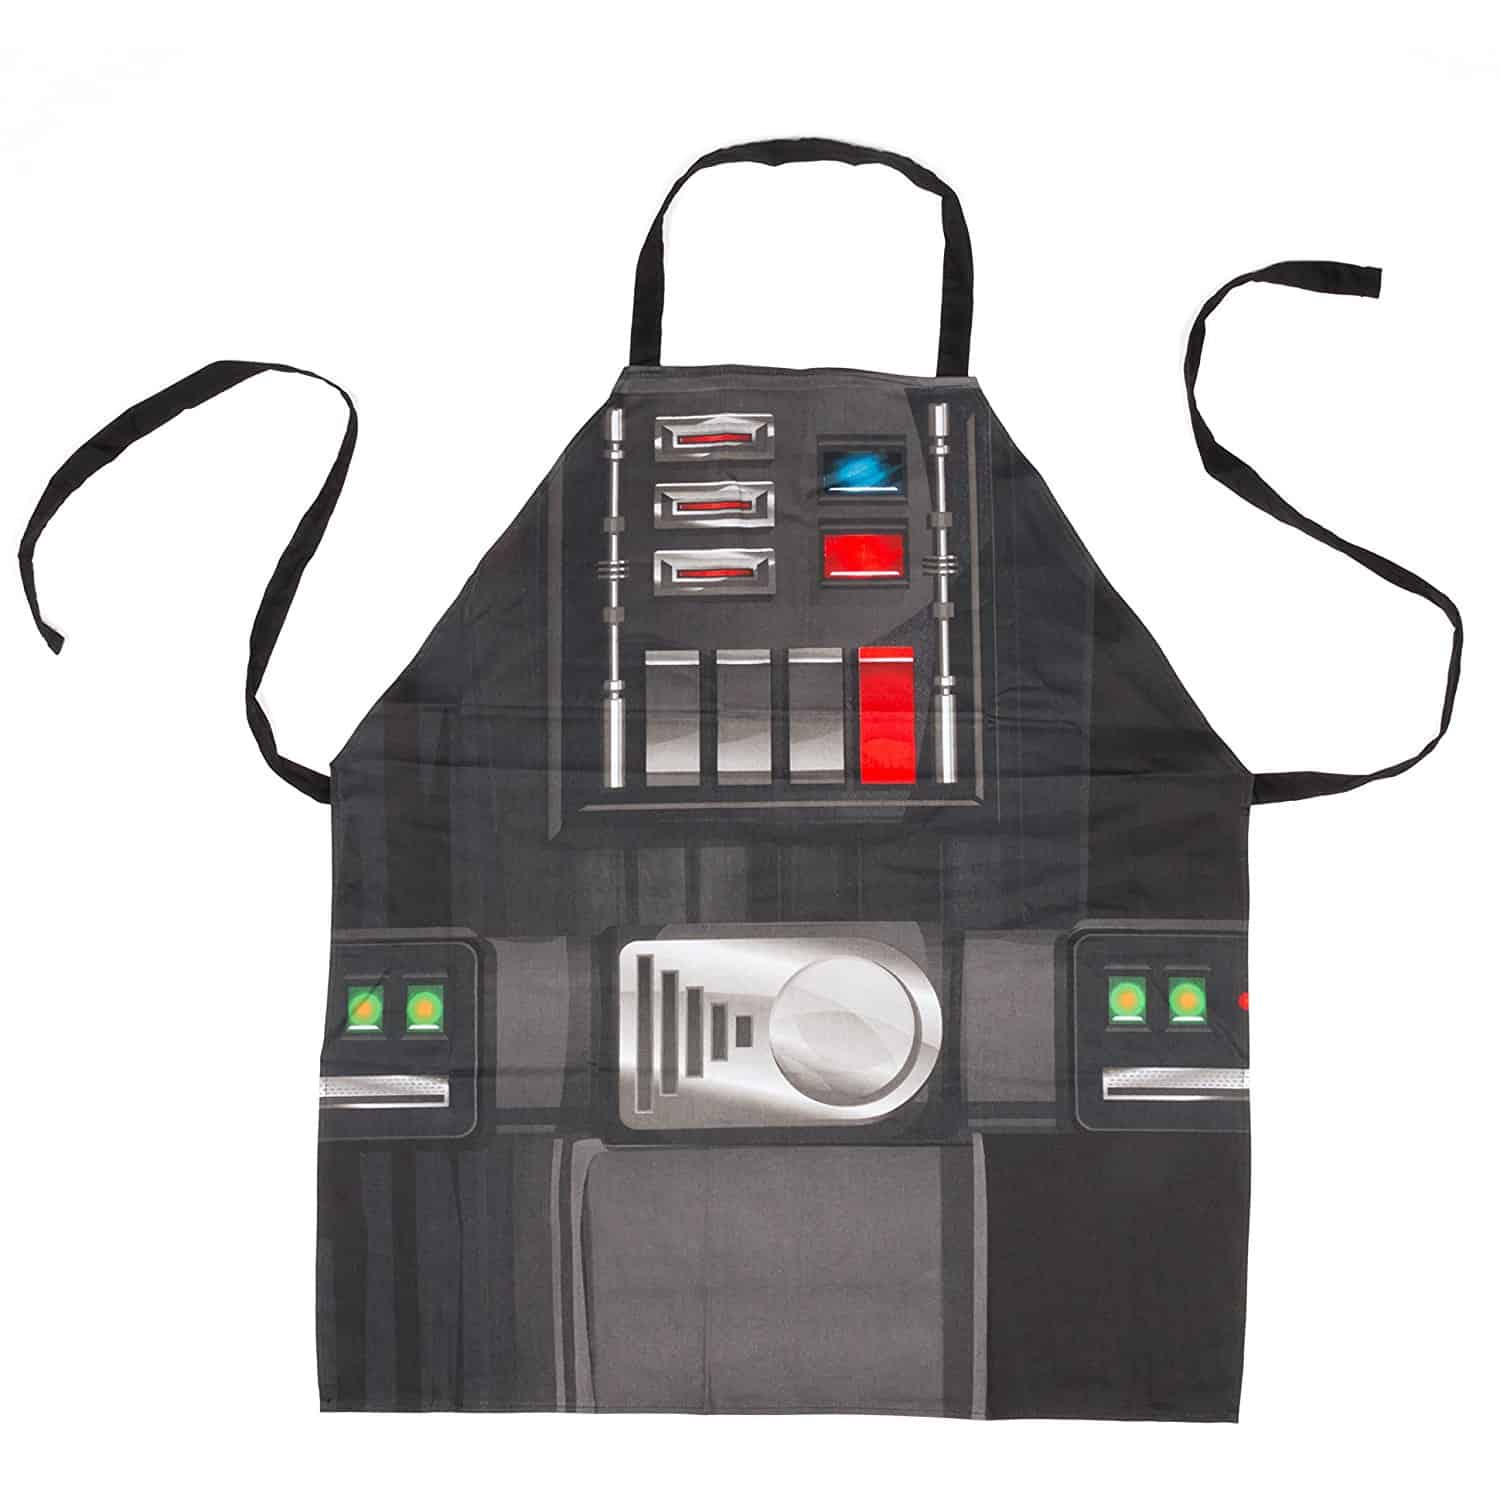 20 Greatest Star Wars Gifts In The Galaxy